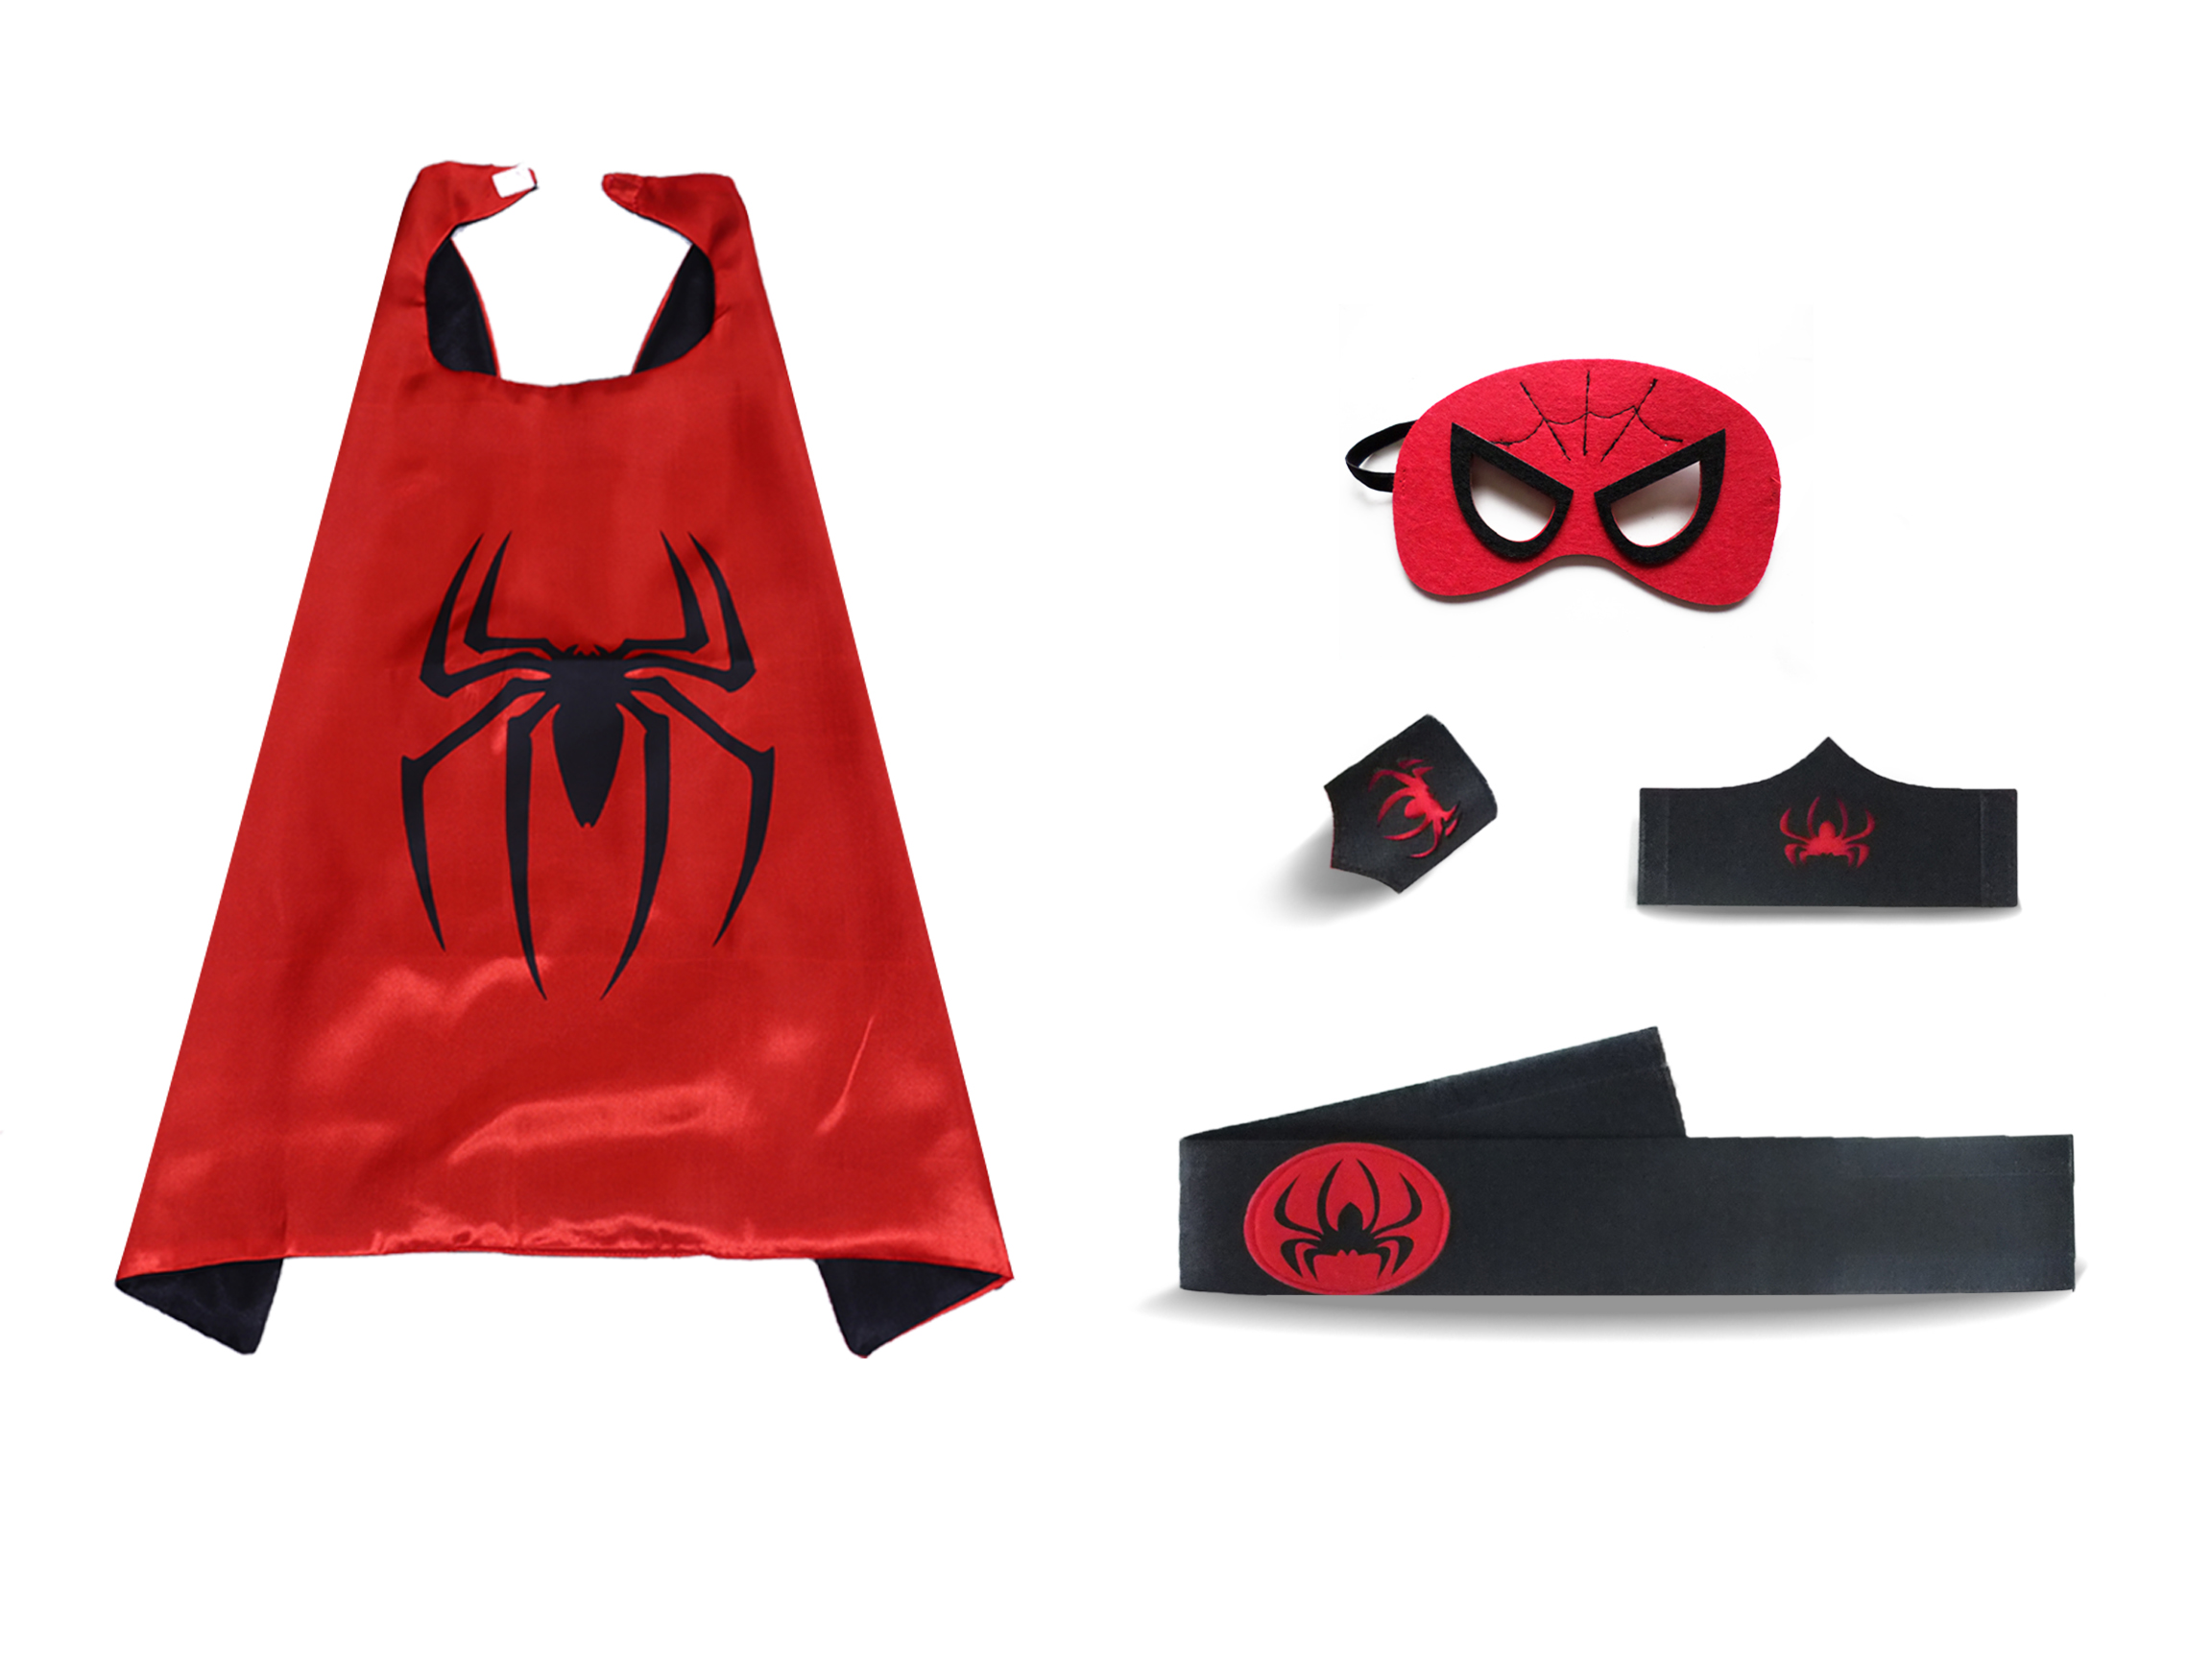 Red Spiderman Super Heros Cape And Mask Sets For Kids